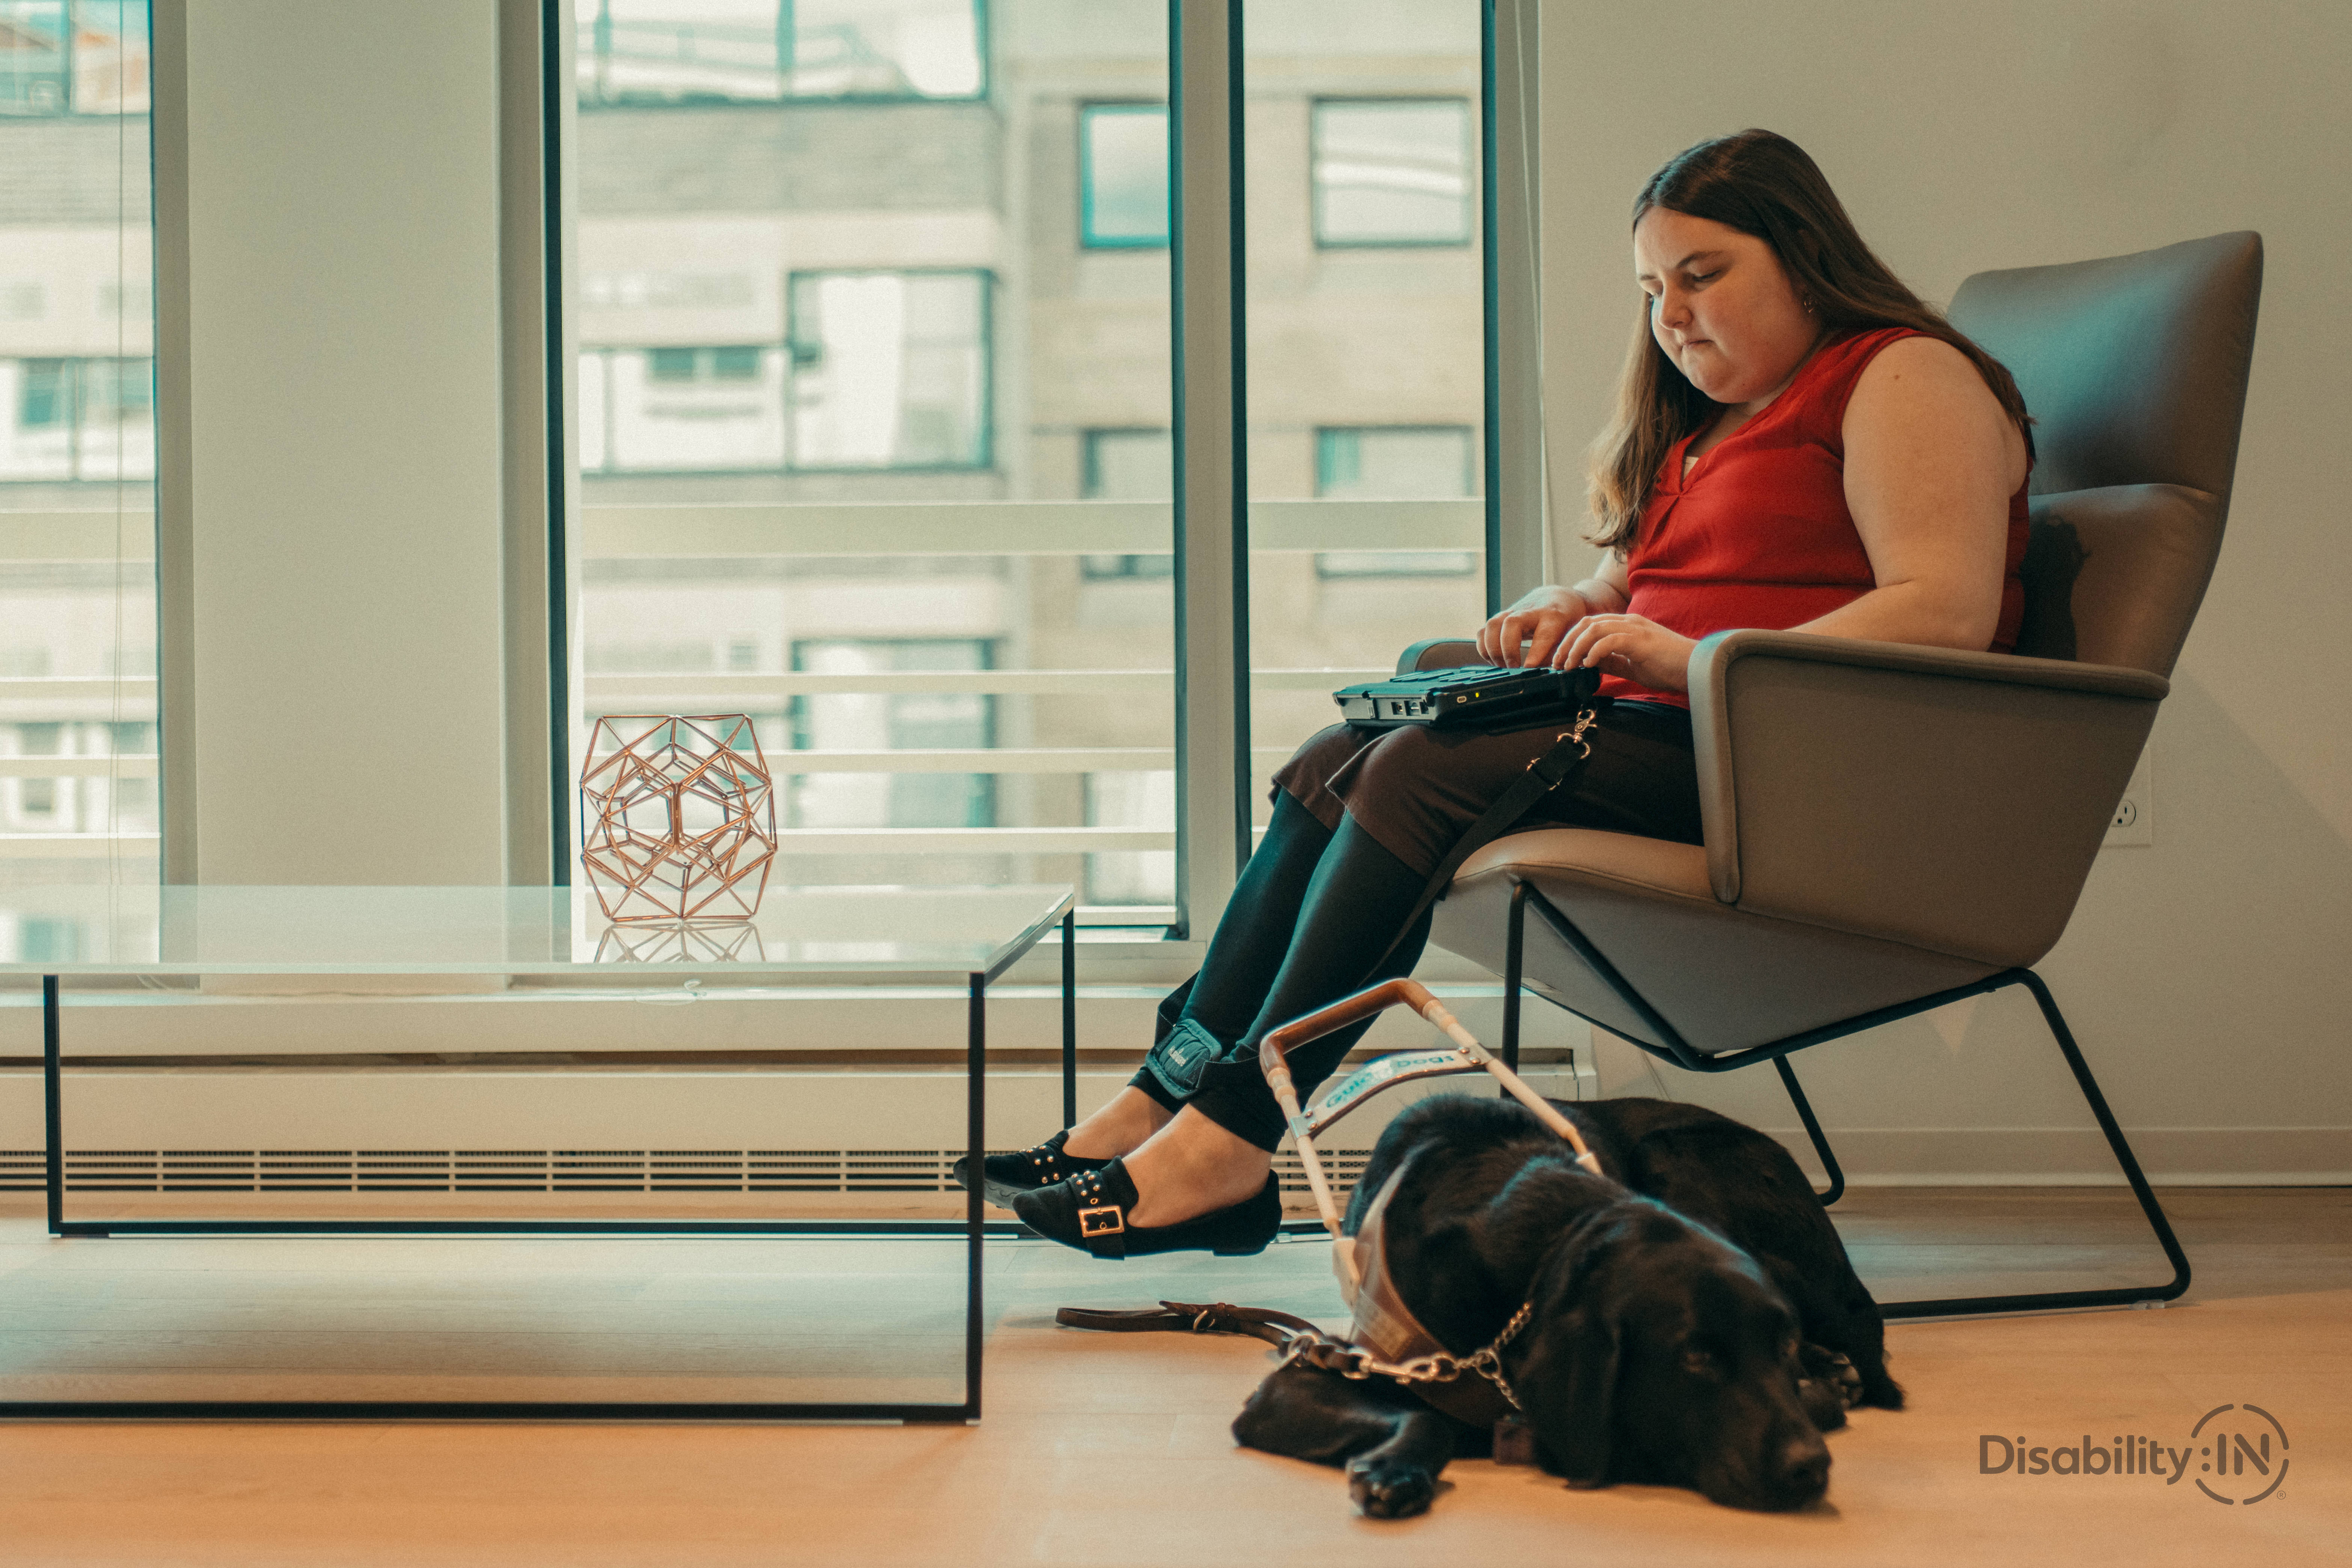 A young woman uses a screen reader with her assistance dog by her feet.